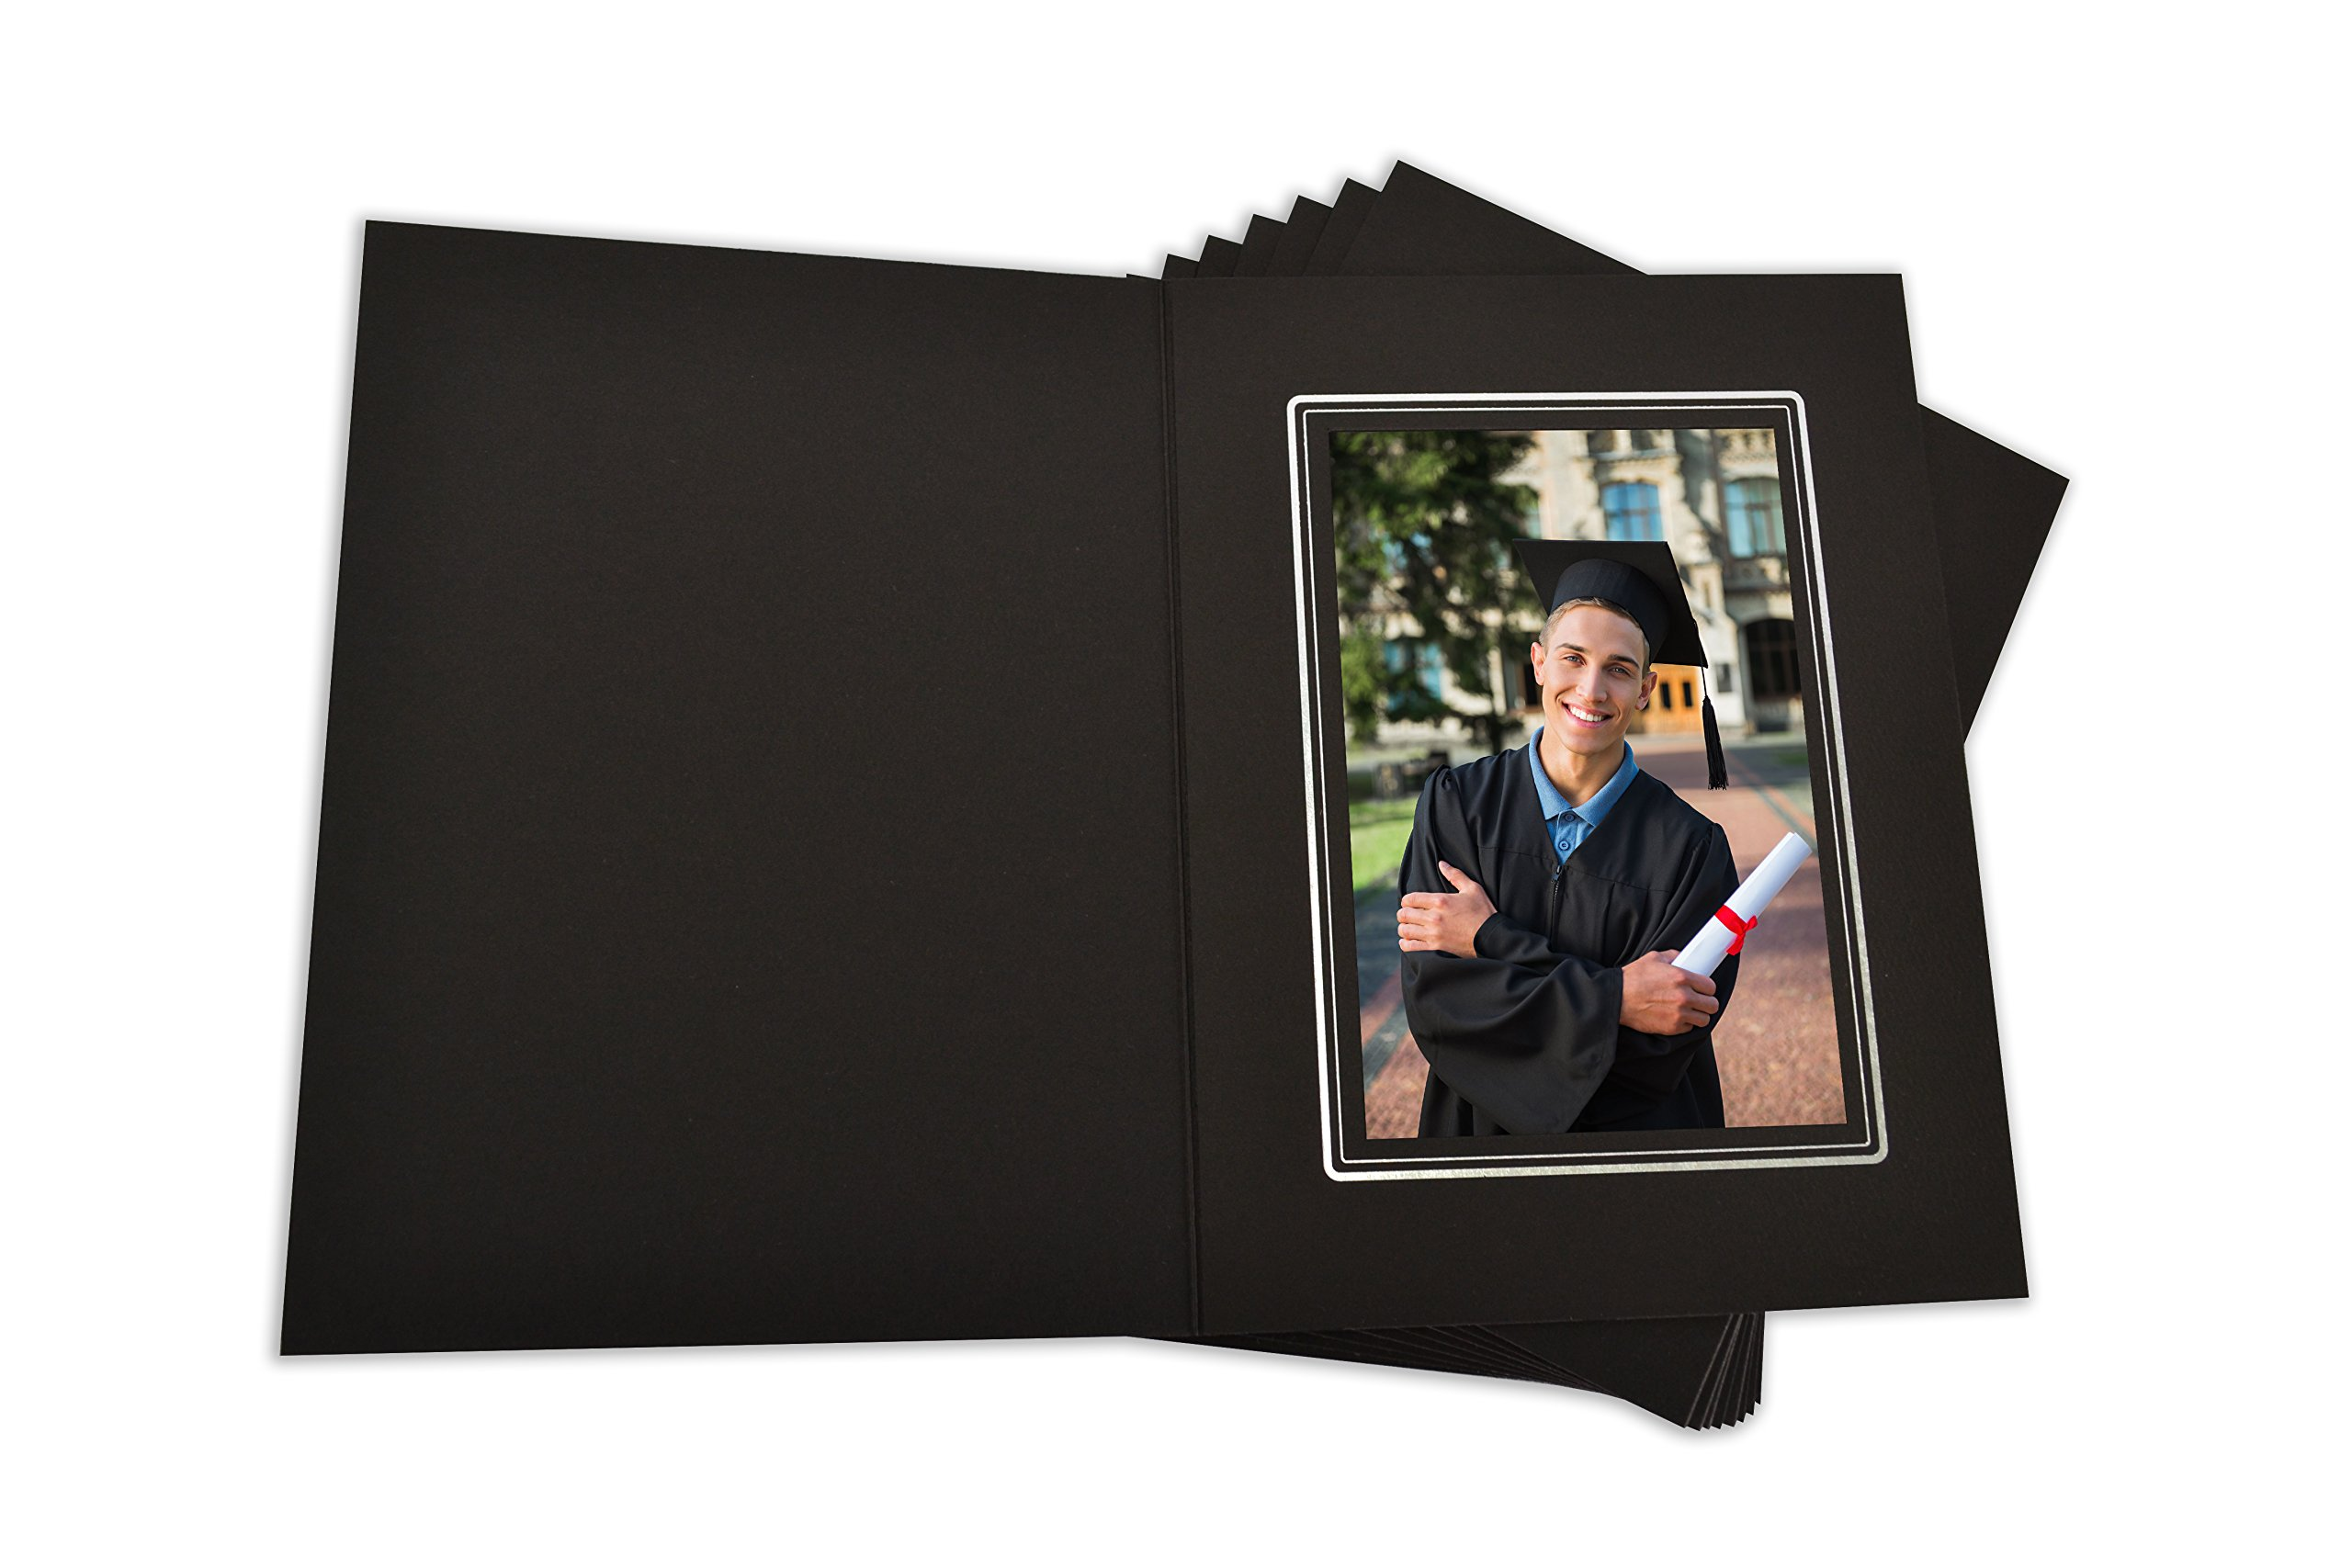 Golden State Art, Cardboard Photo Folder for a 4x6 Photo (Pack of 100) Black Color by Golden State Art (Image #3)